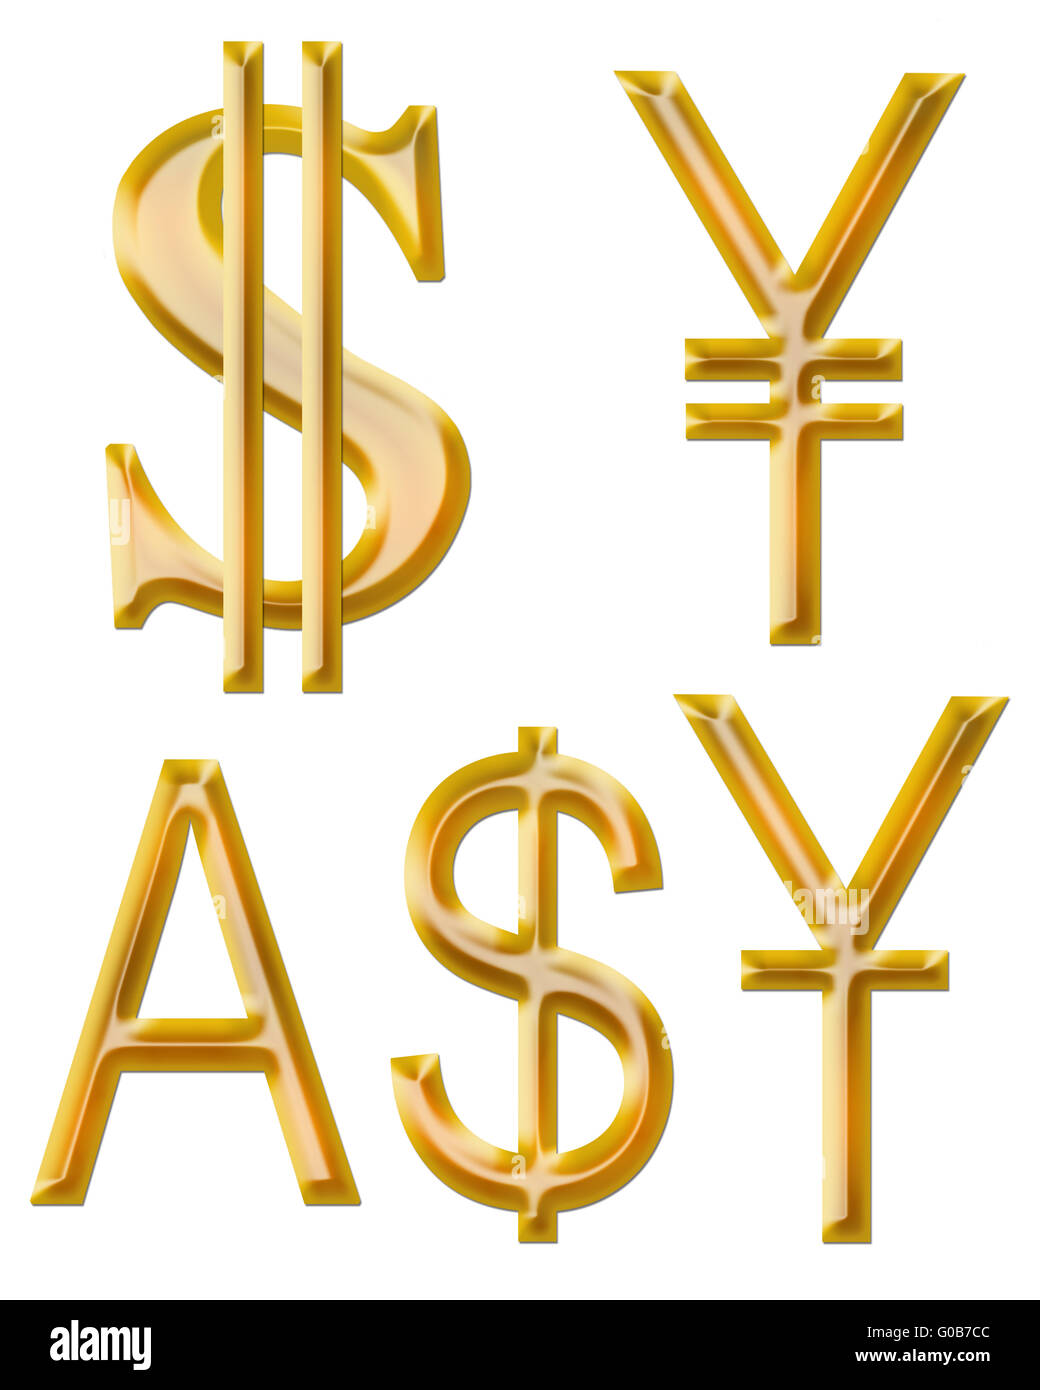 Signs of currencies yuan dollar yen and austral stock photo signs of currencies yuan dollar yen and austral buycottarizona Gallery